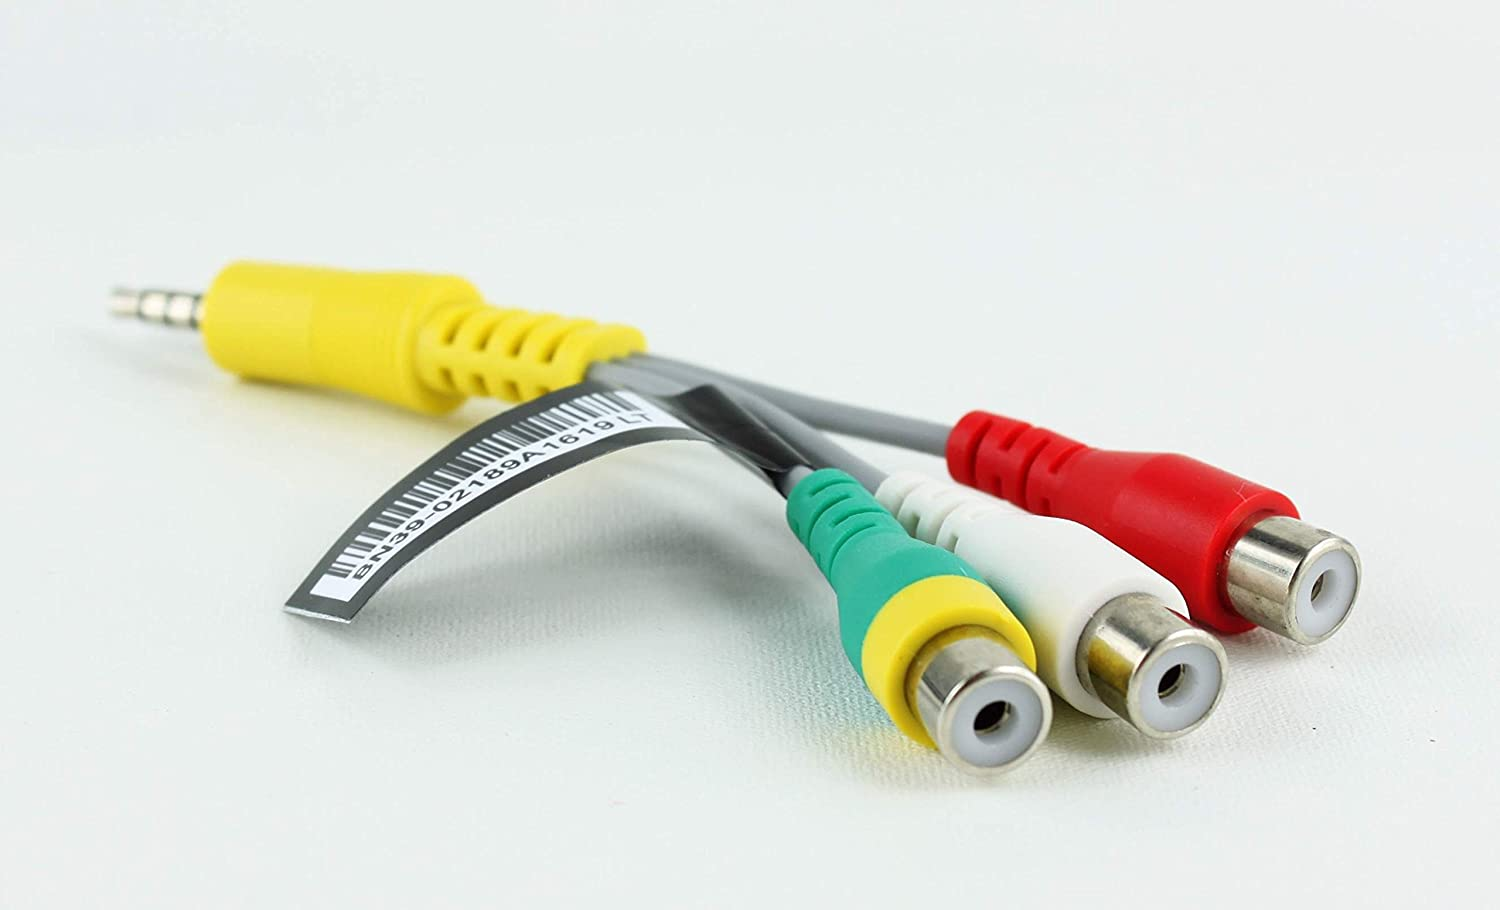 Amazon.com: Samsung Gender Cable DC To RCA Cable BN39-02189A: Home Audio & Theater